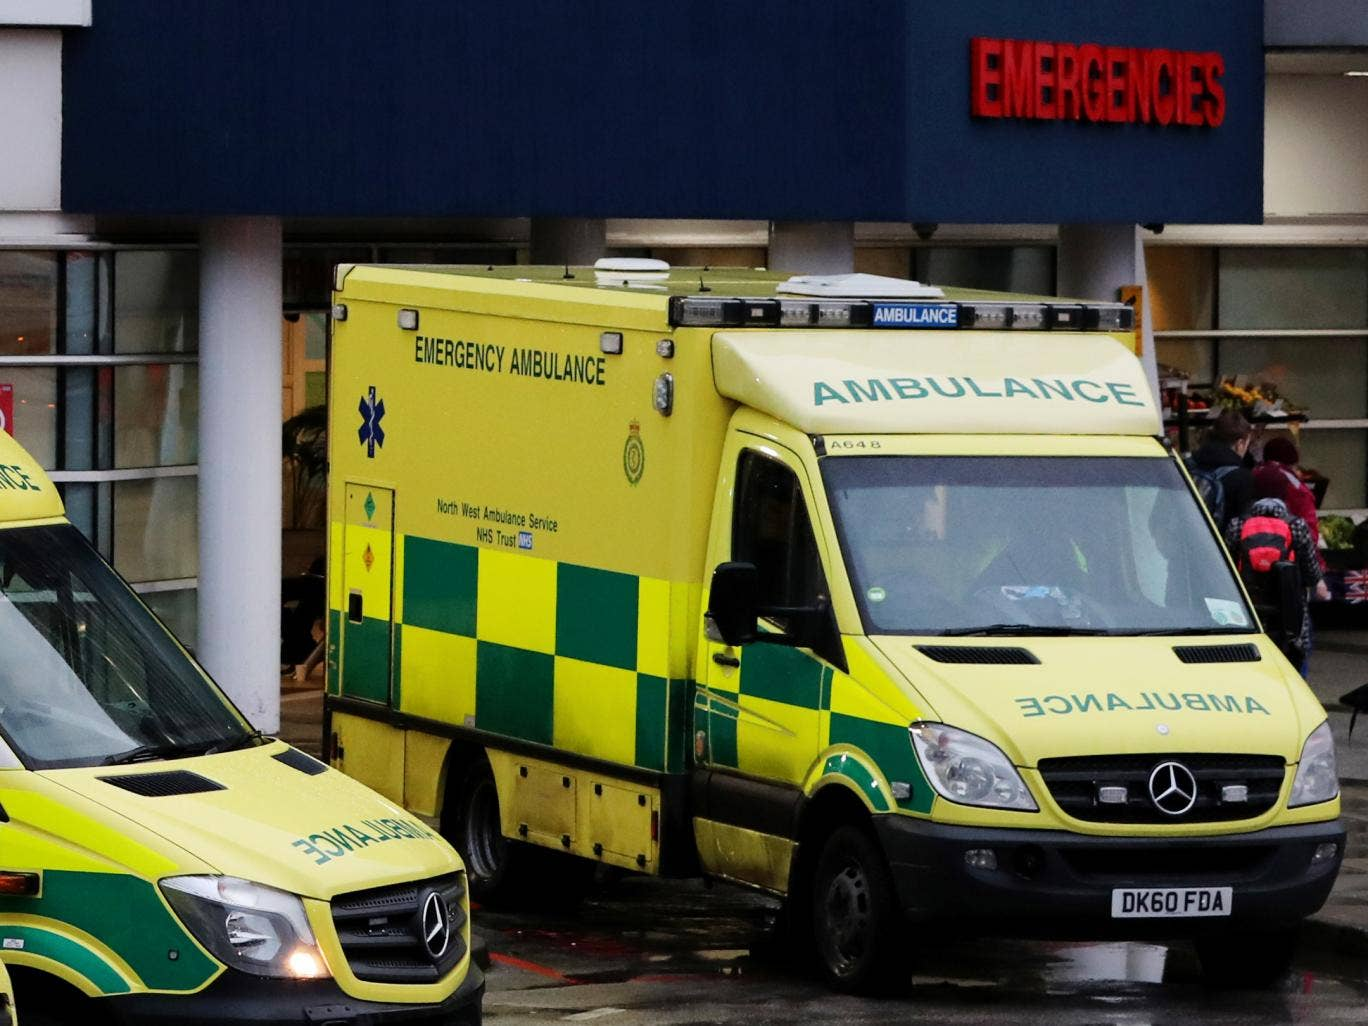 The Ministry of Health wants to give patients to the ambulance for outsourcing